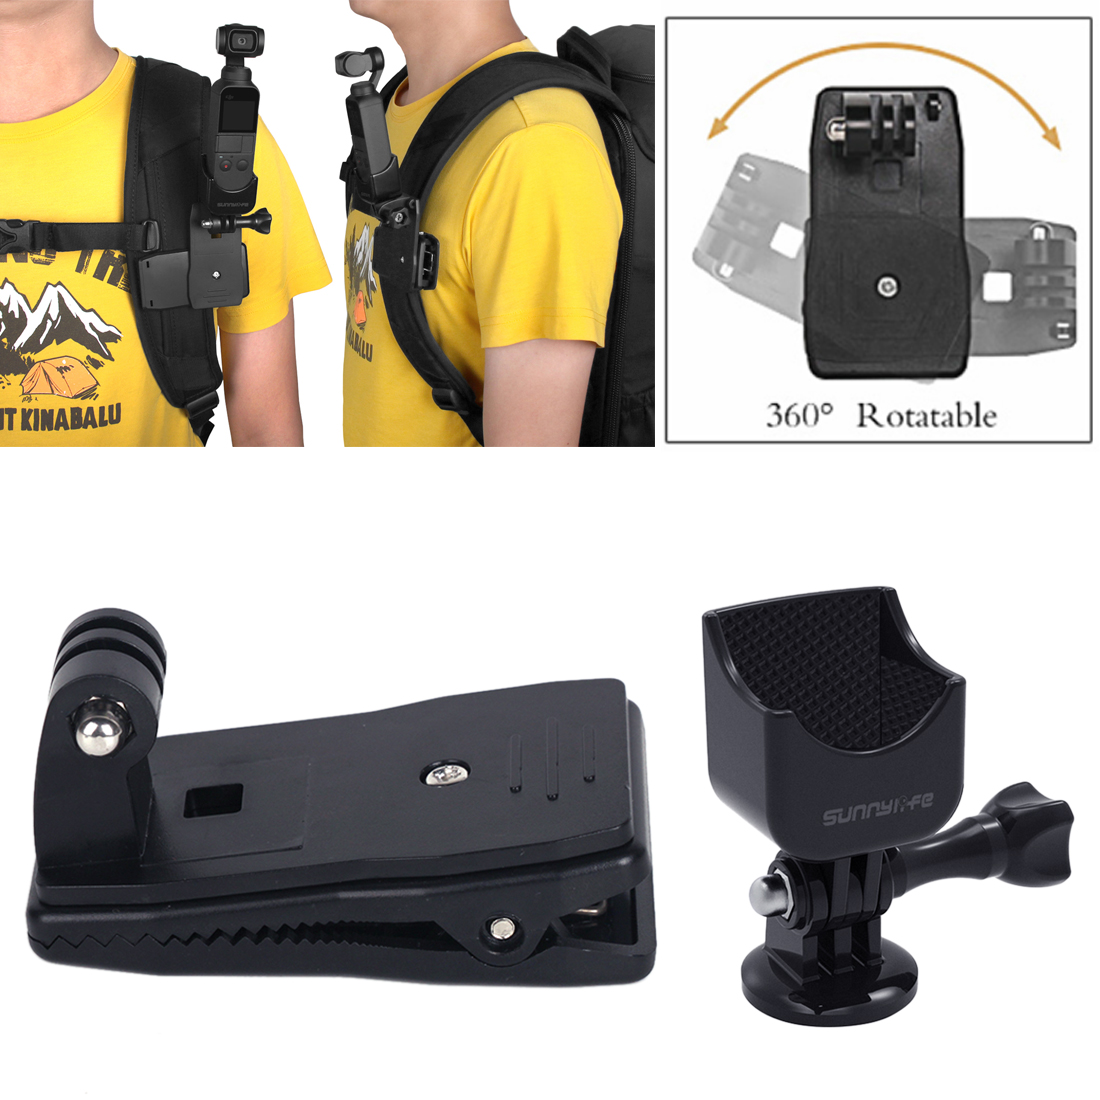 HOBBYINRC Multifunction Adapter and Bag Clip with 1/4 Screw Interface Expand Accessories for DJI OSMO Pocket FOR GOPRO adapter